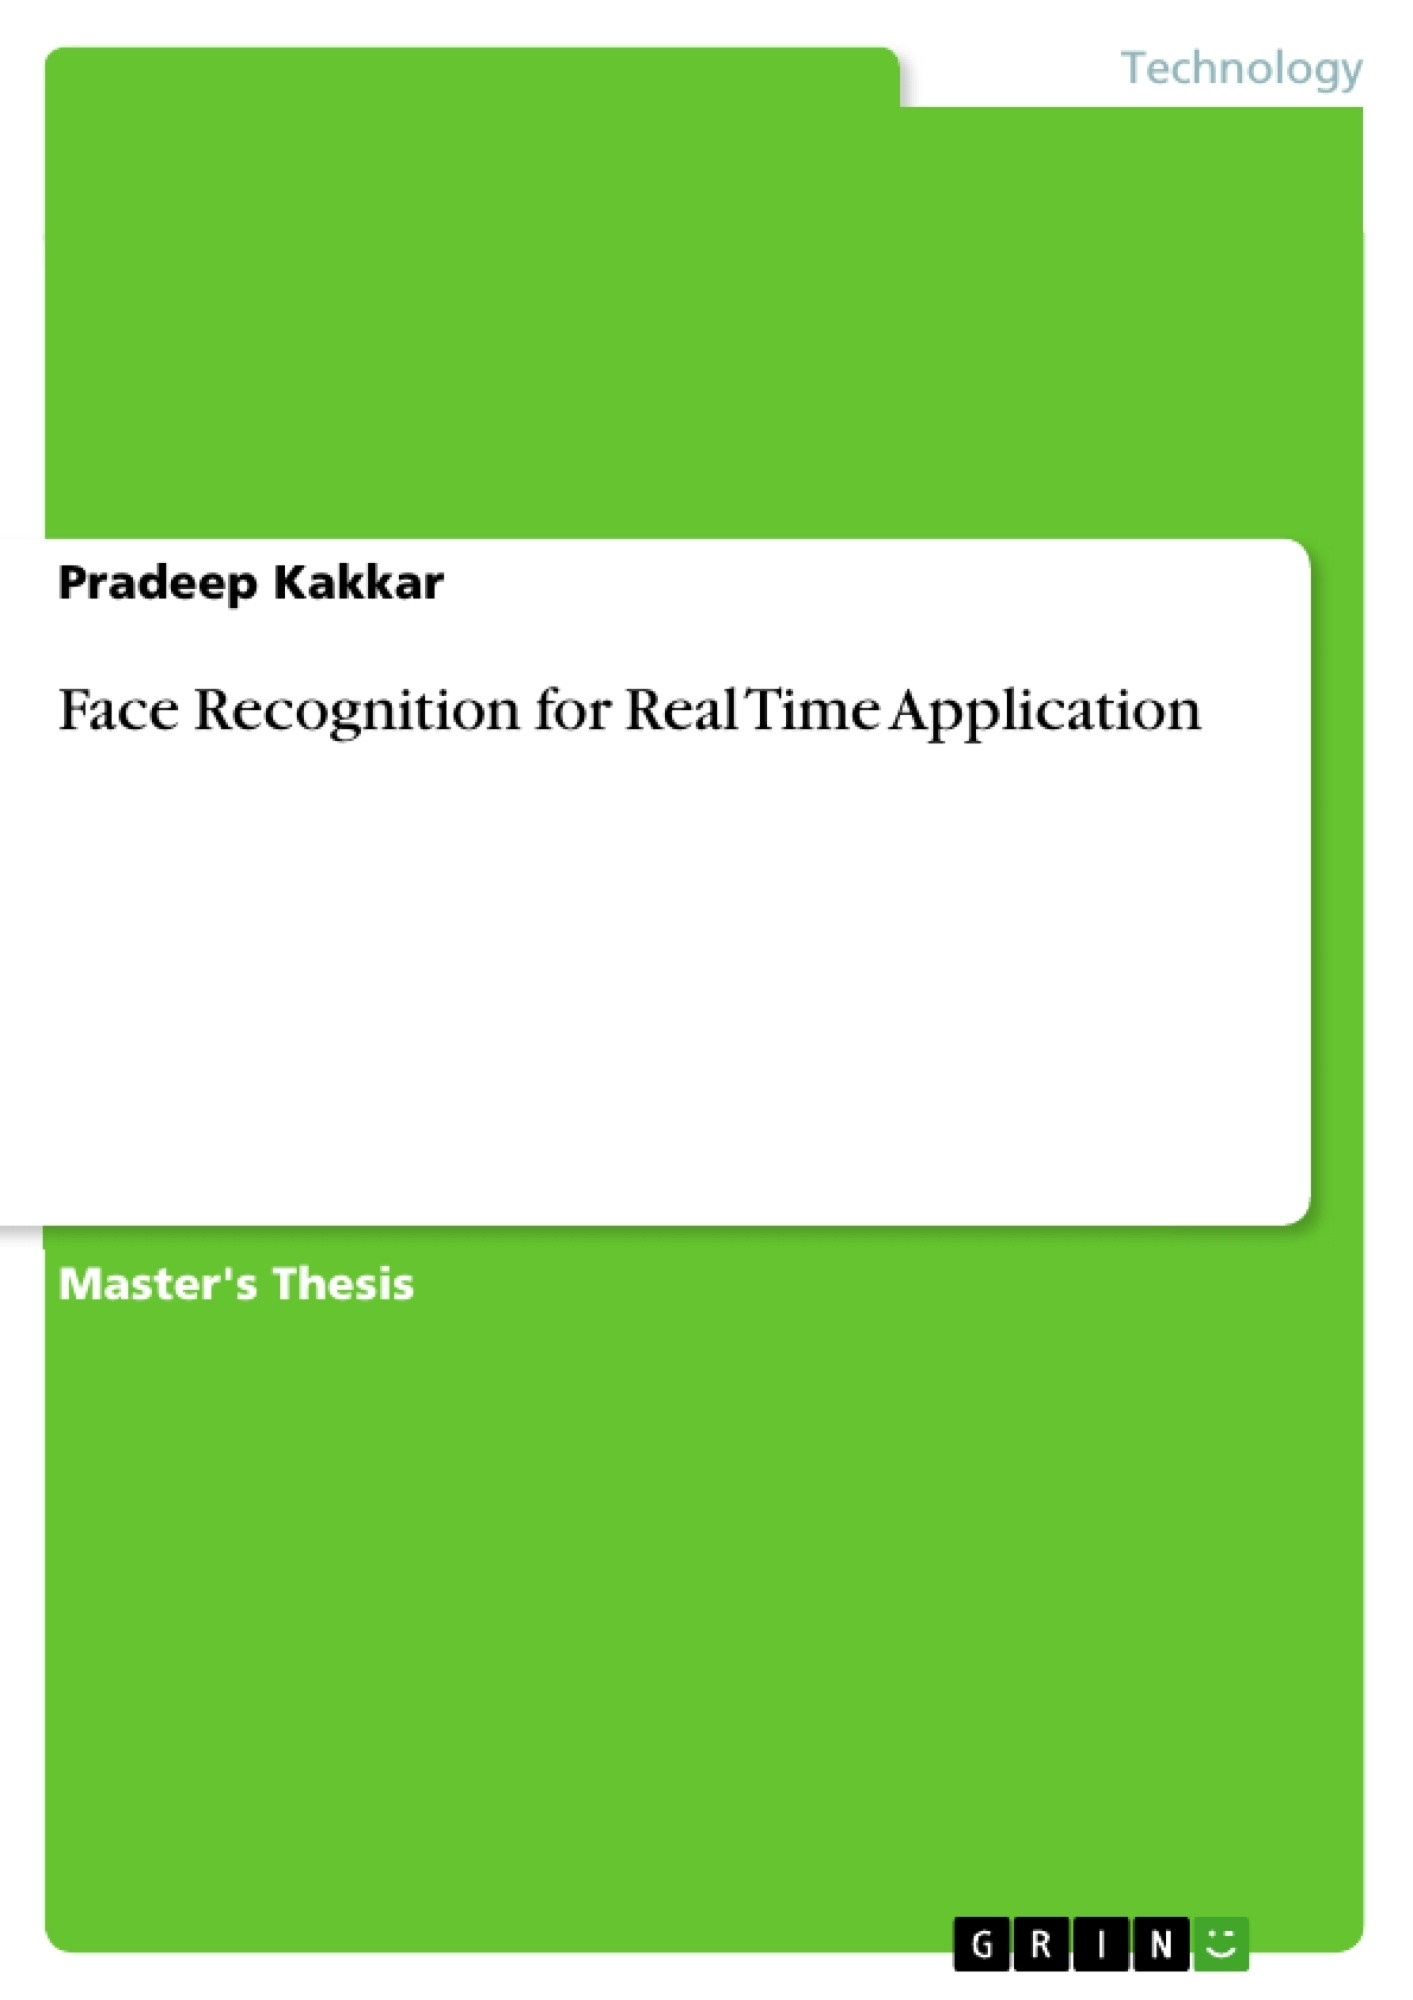 GRIN - Face Recognition for Real Time Application